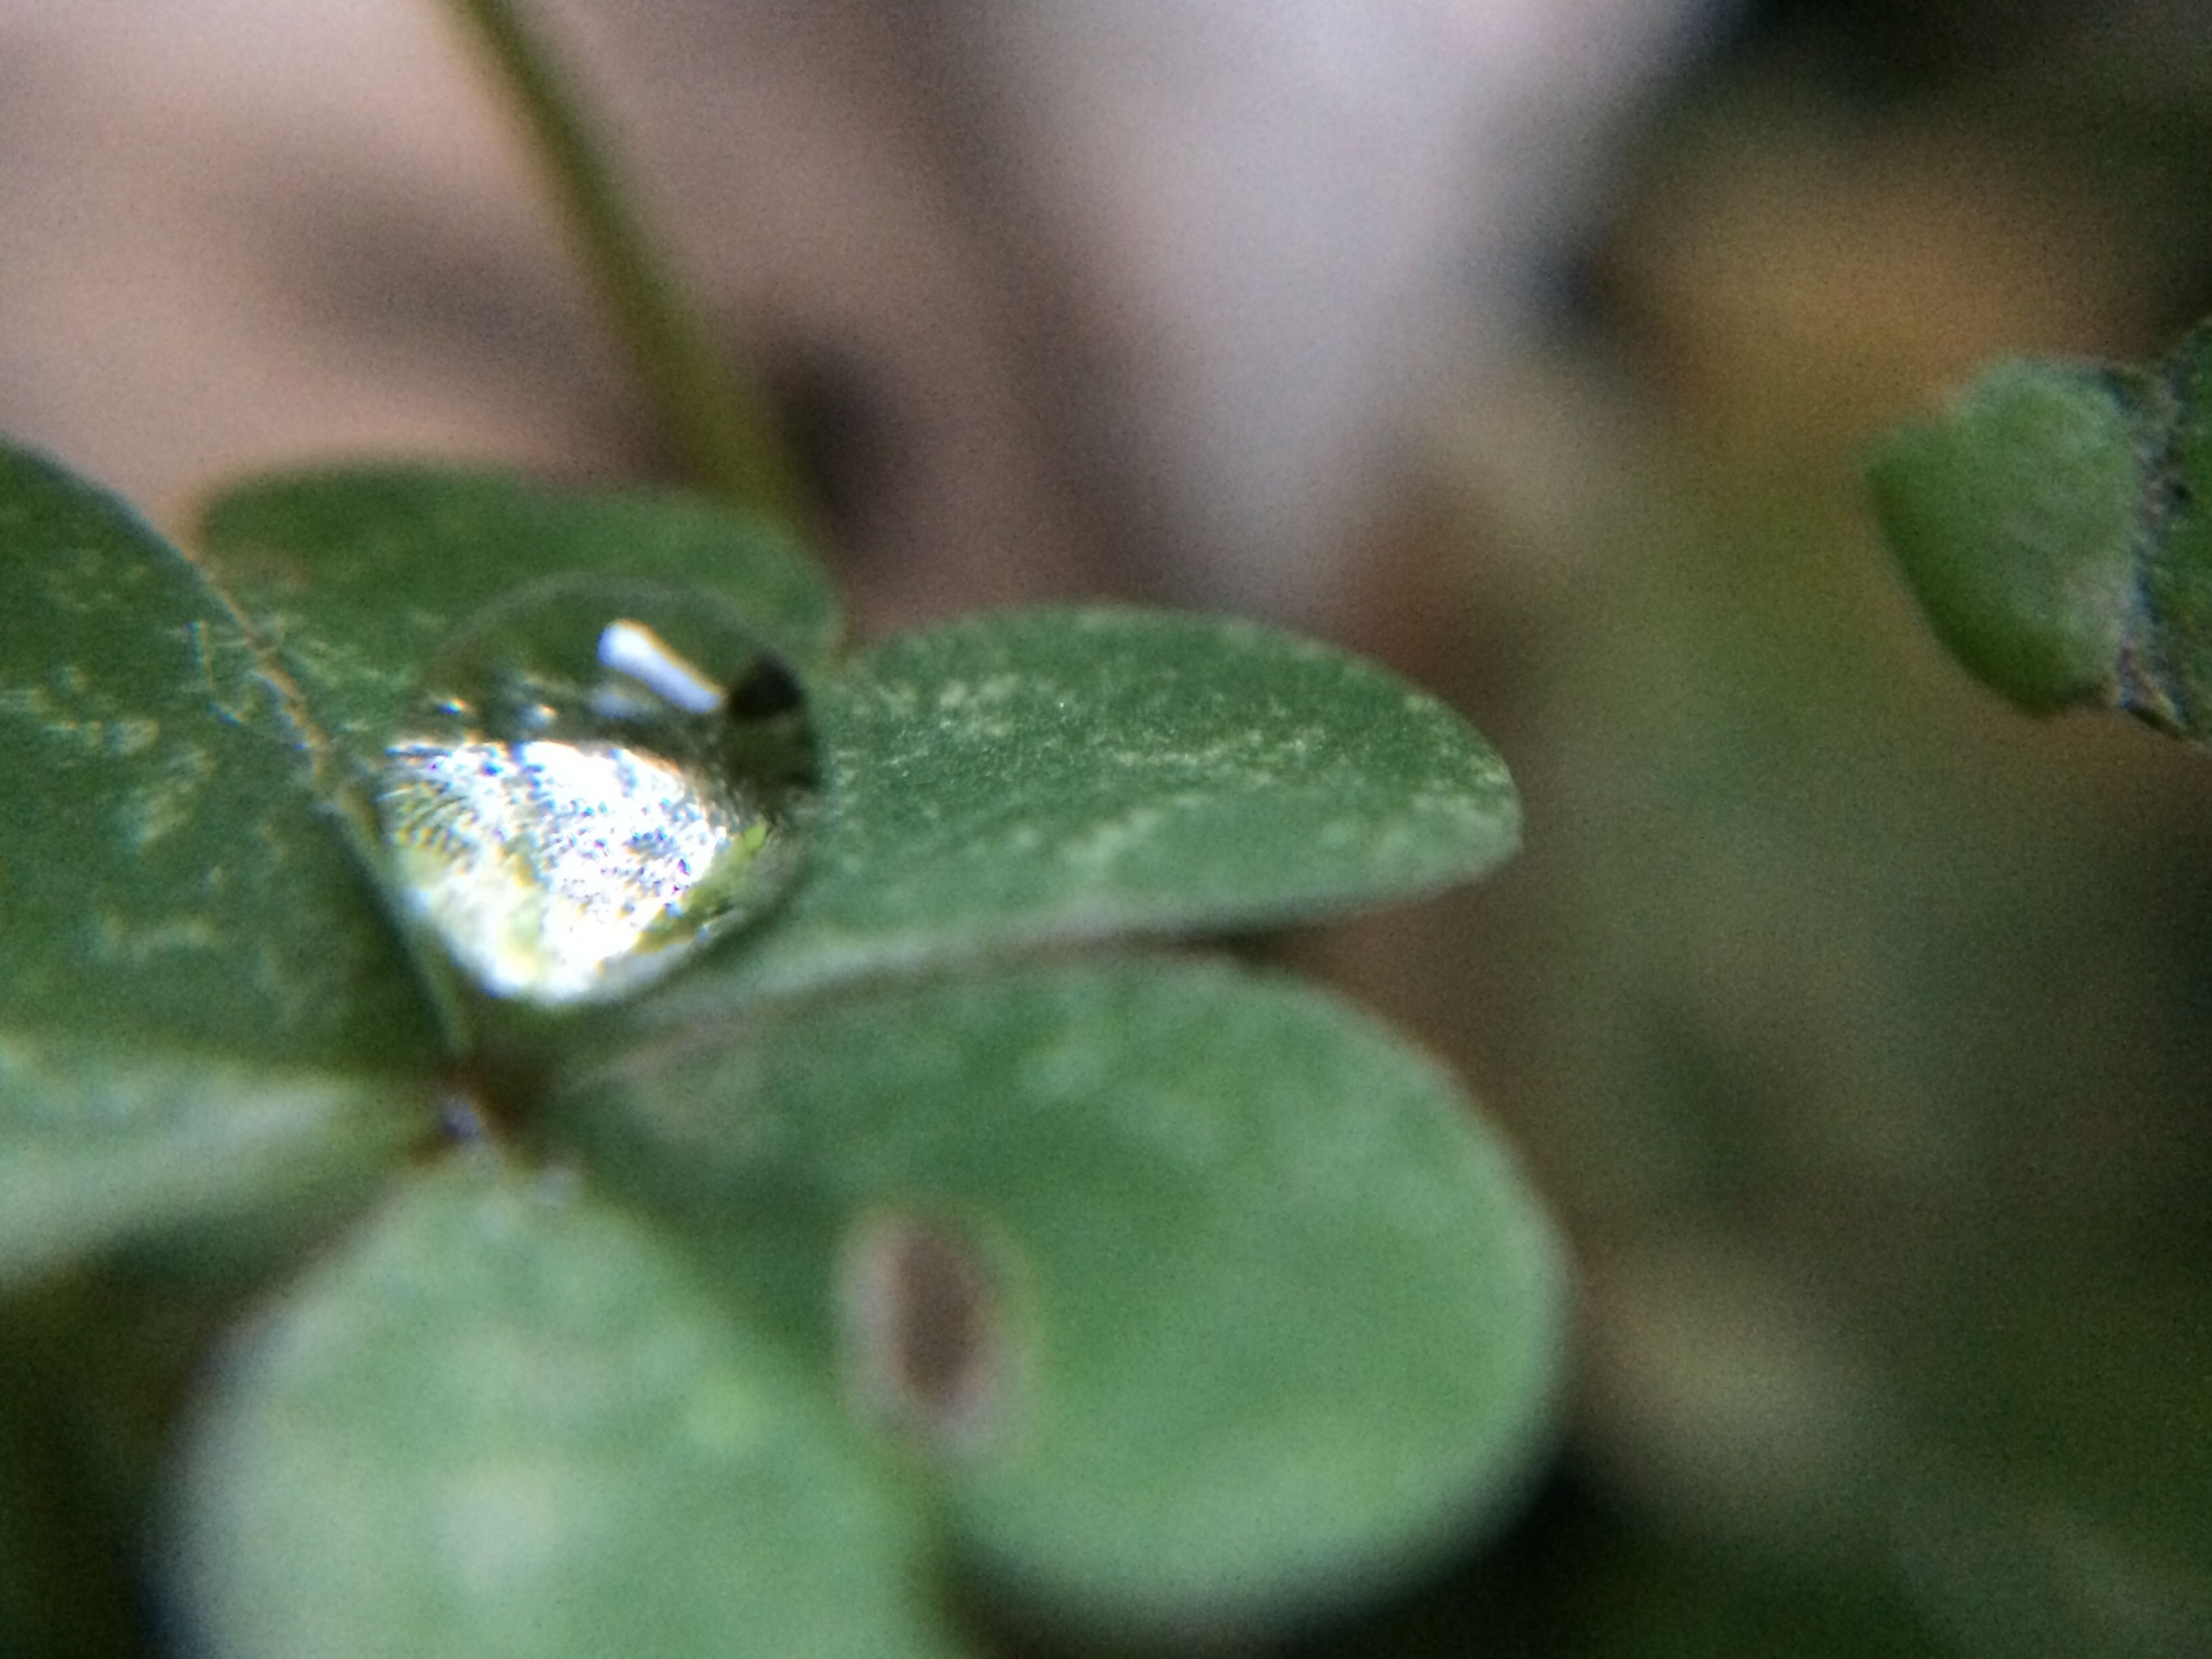 drop, water, close-up, growth, wet, freshness, leaf, green color, selective focus, plant, fragility, dew, nature, beauty in nature, focus on foreground, raindrop, water drop, purity, droplet, macro